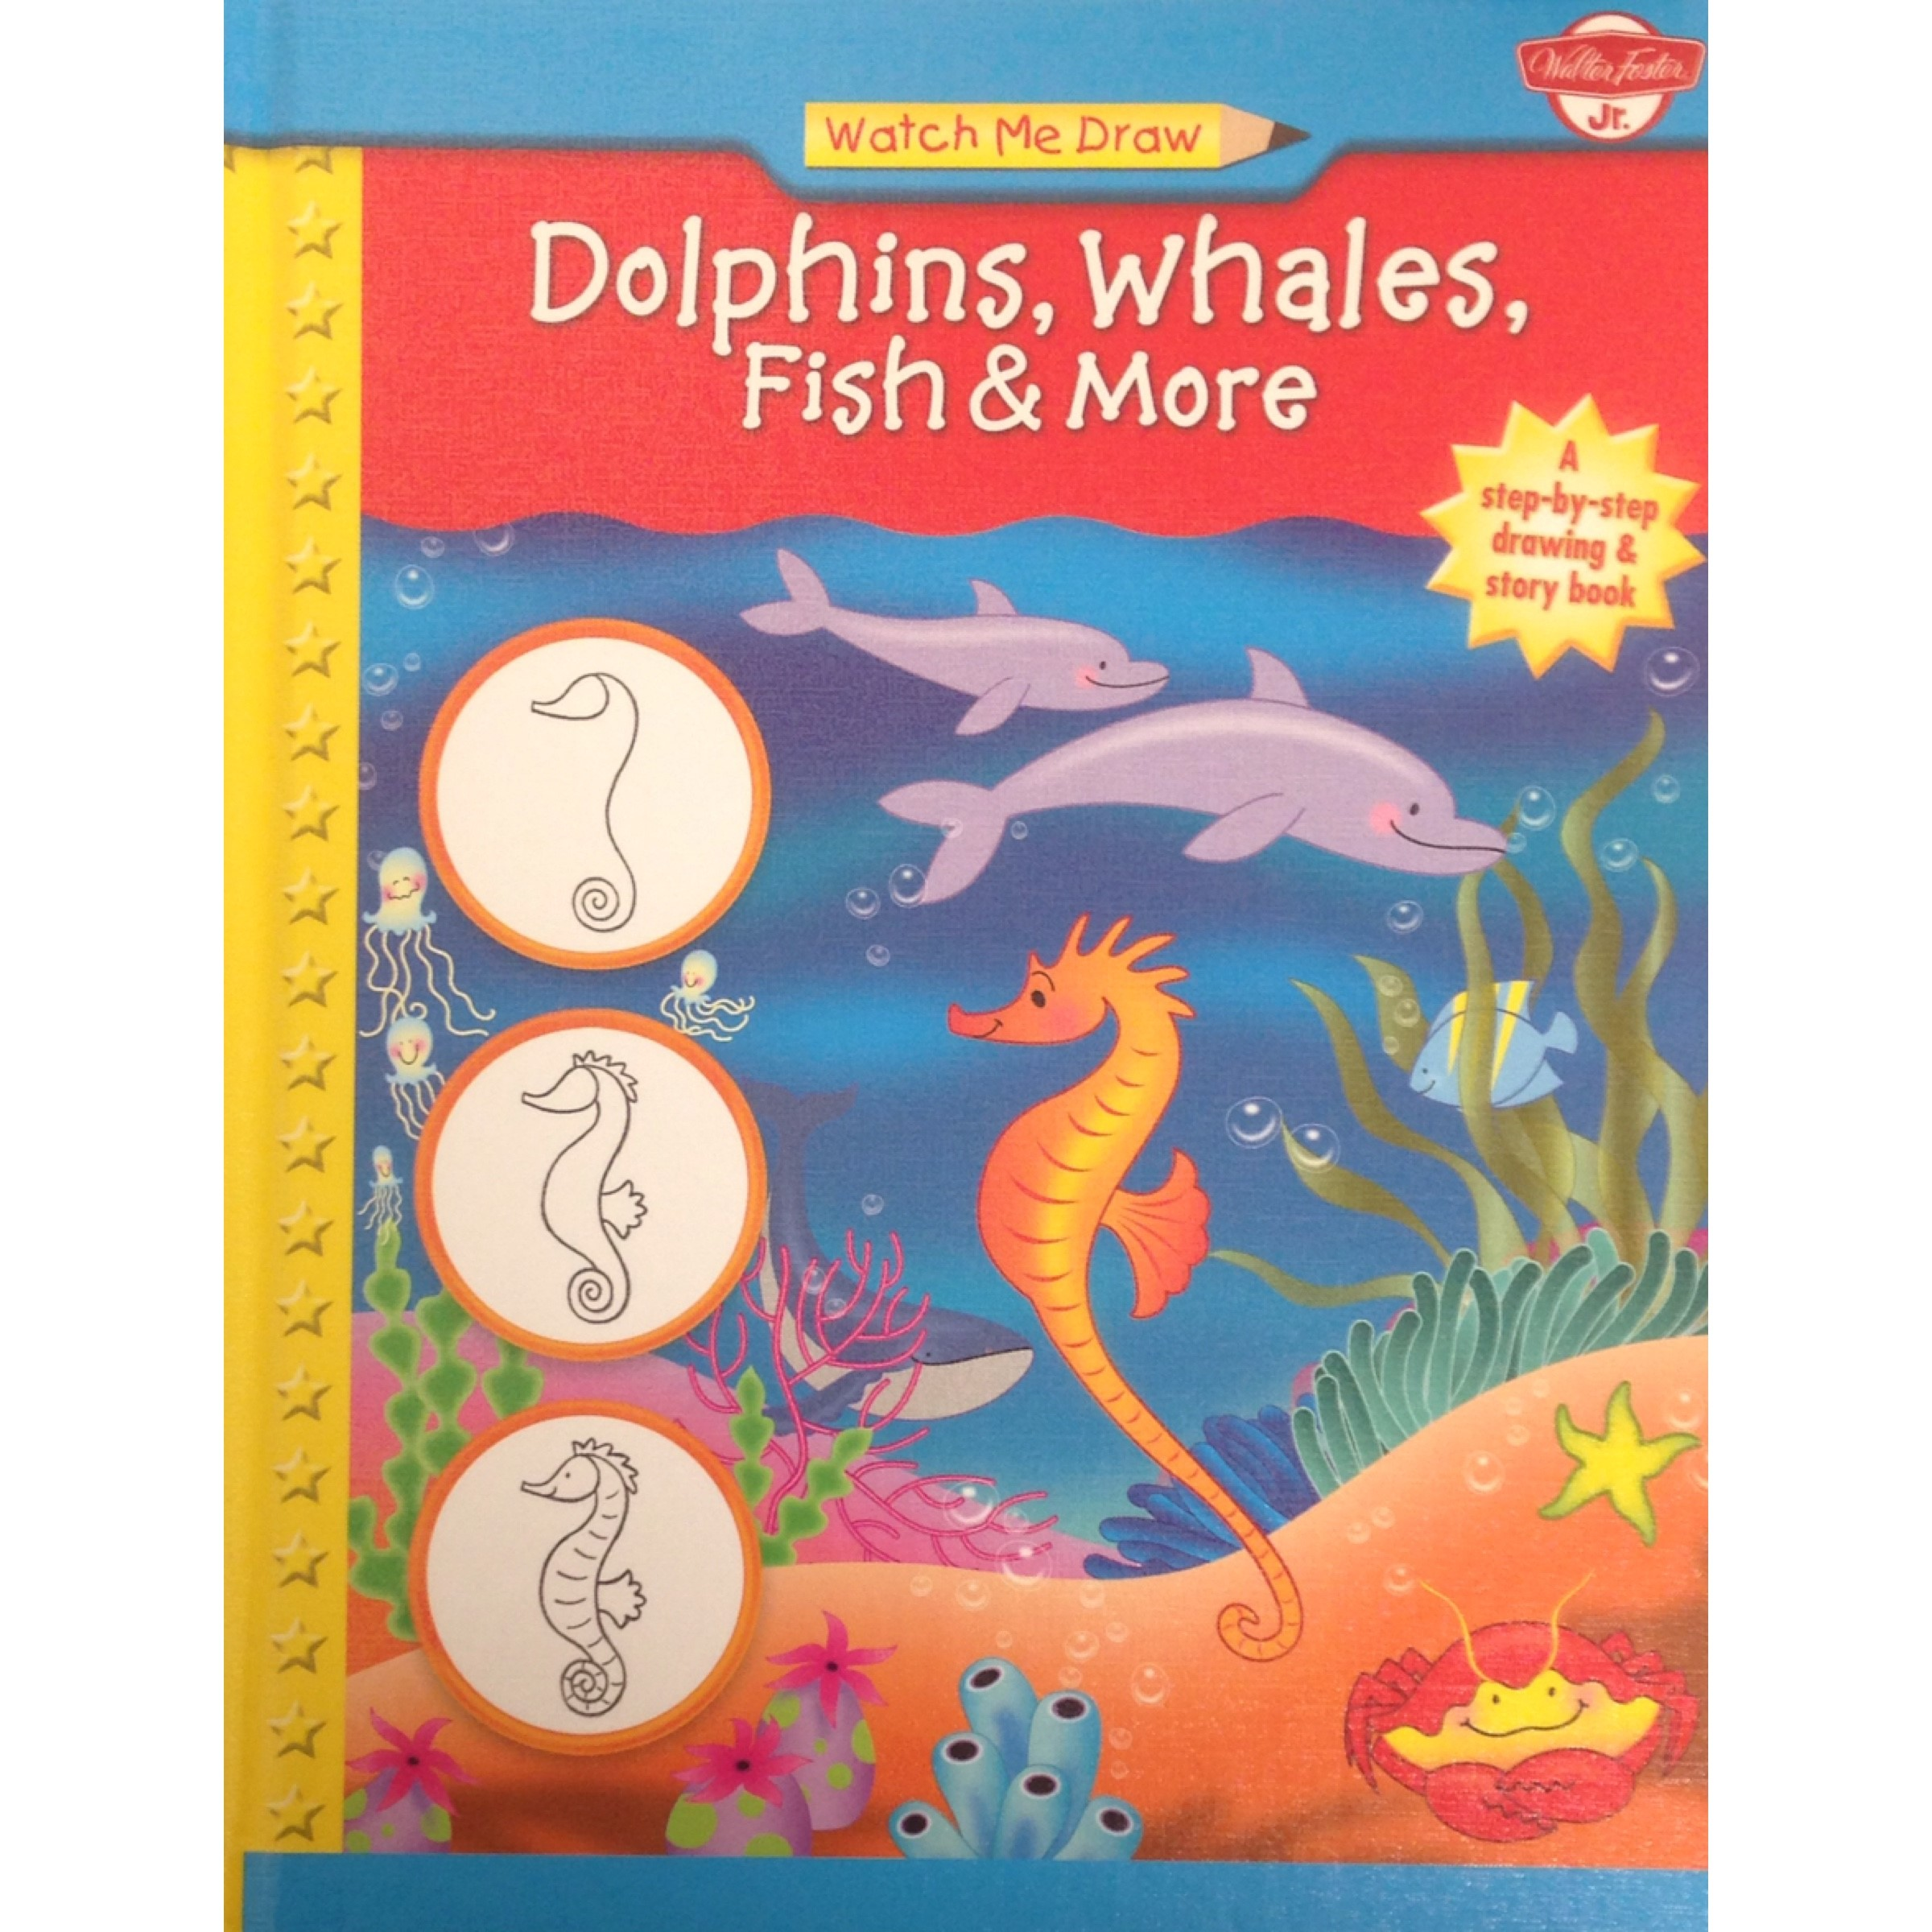 Watch Me Draw Dolphins, Whales, Fish & More